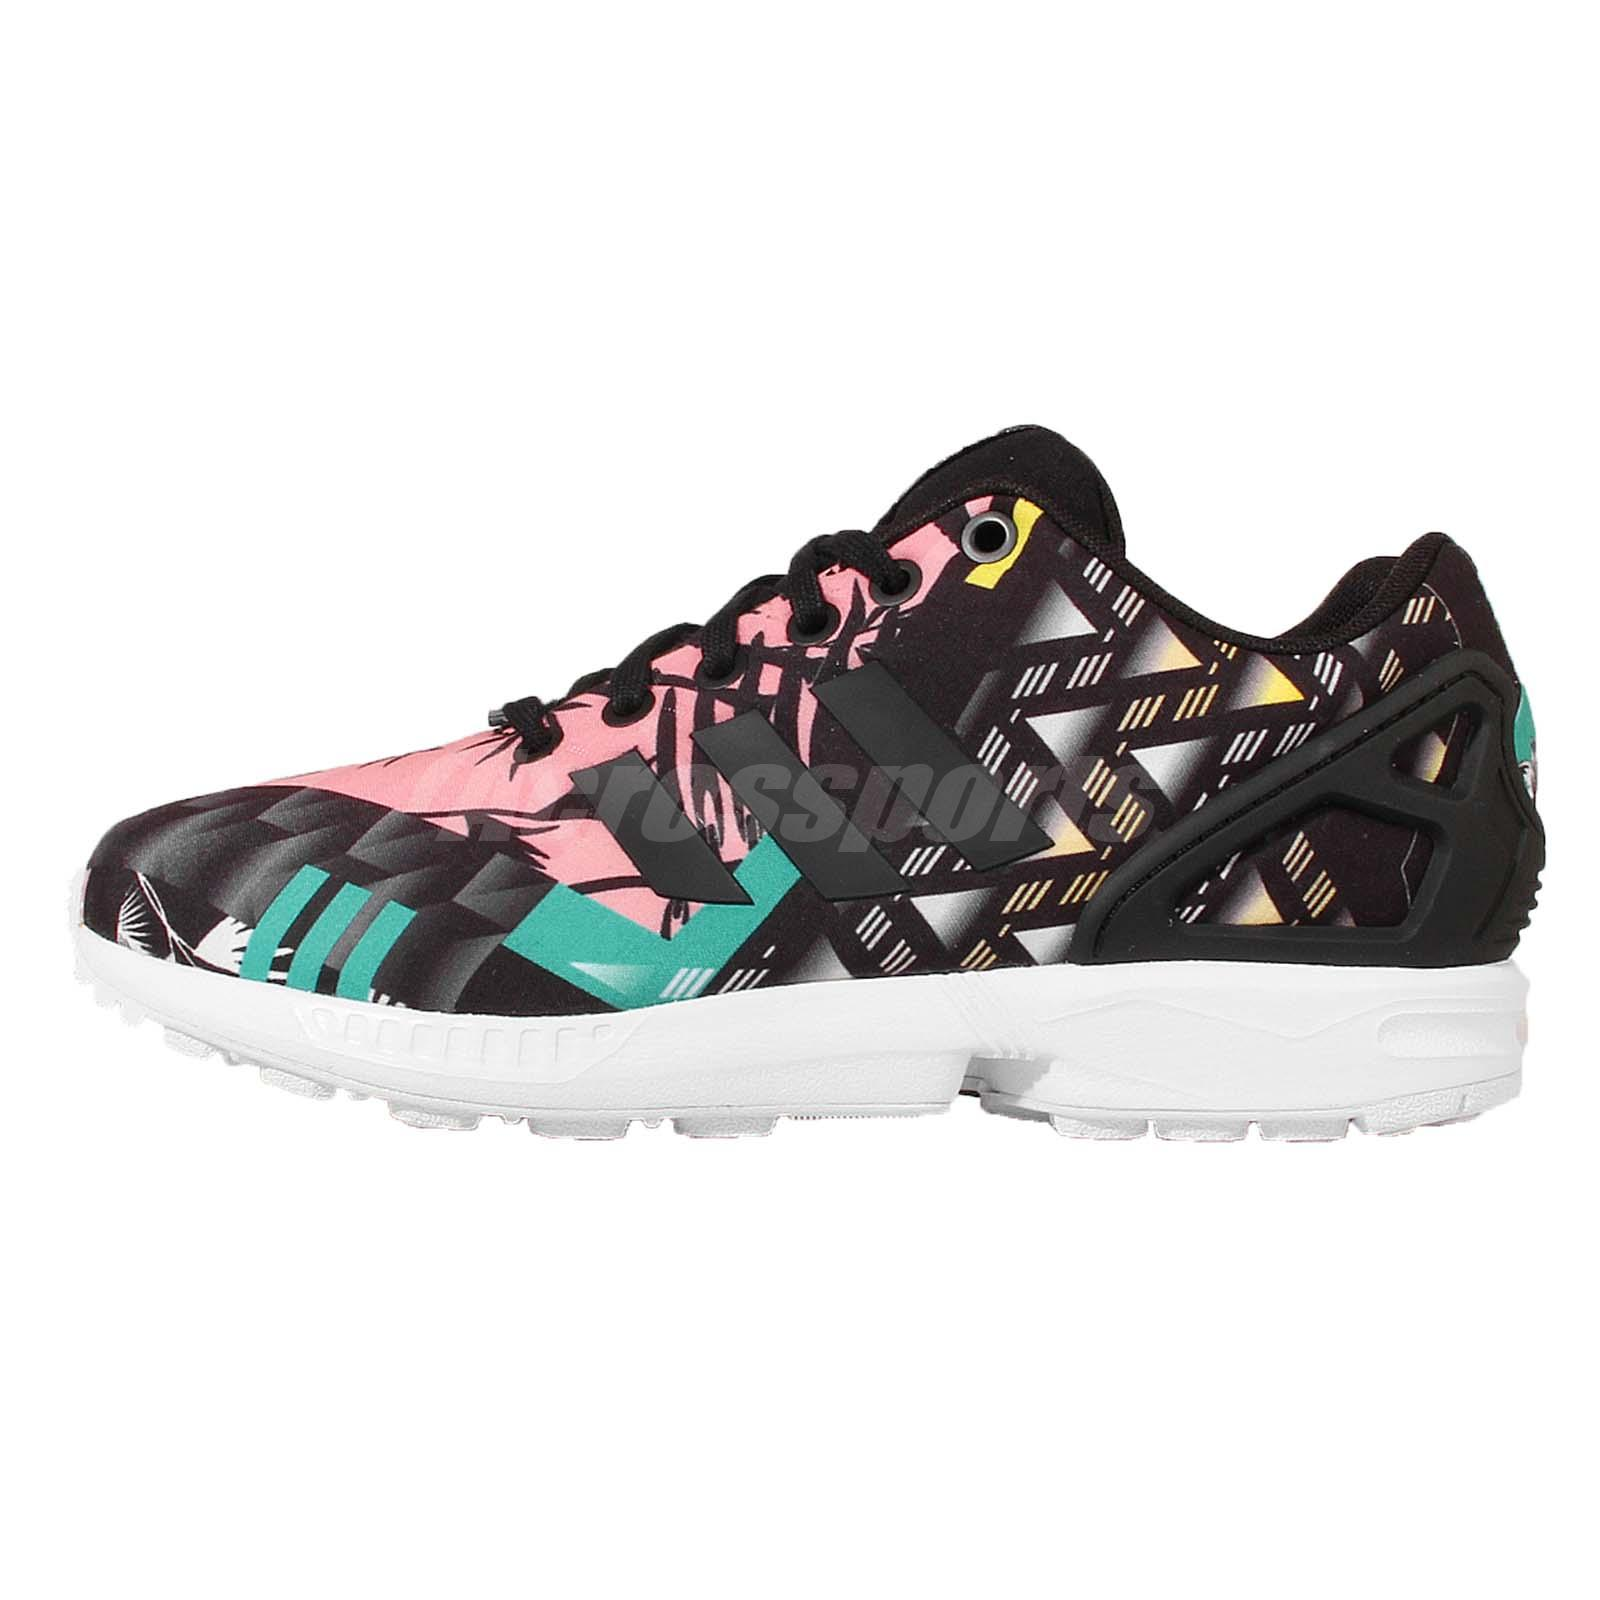 adidas Originals ZX Flux W Black Floral Women Running Shoes Sneakers S74980